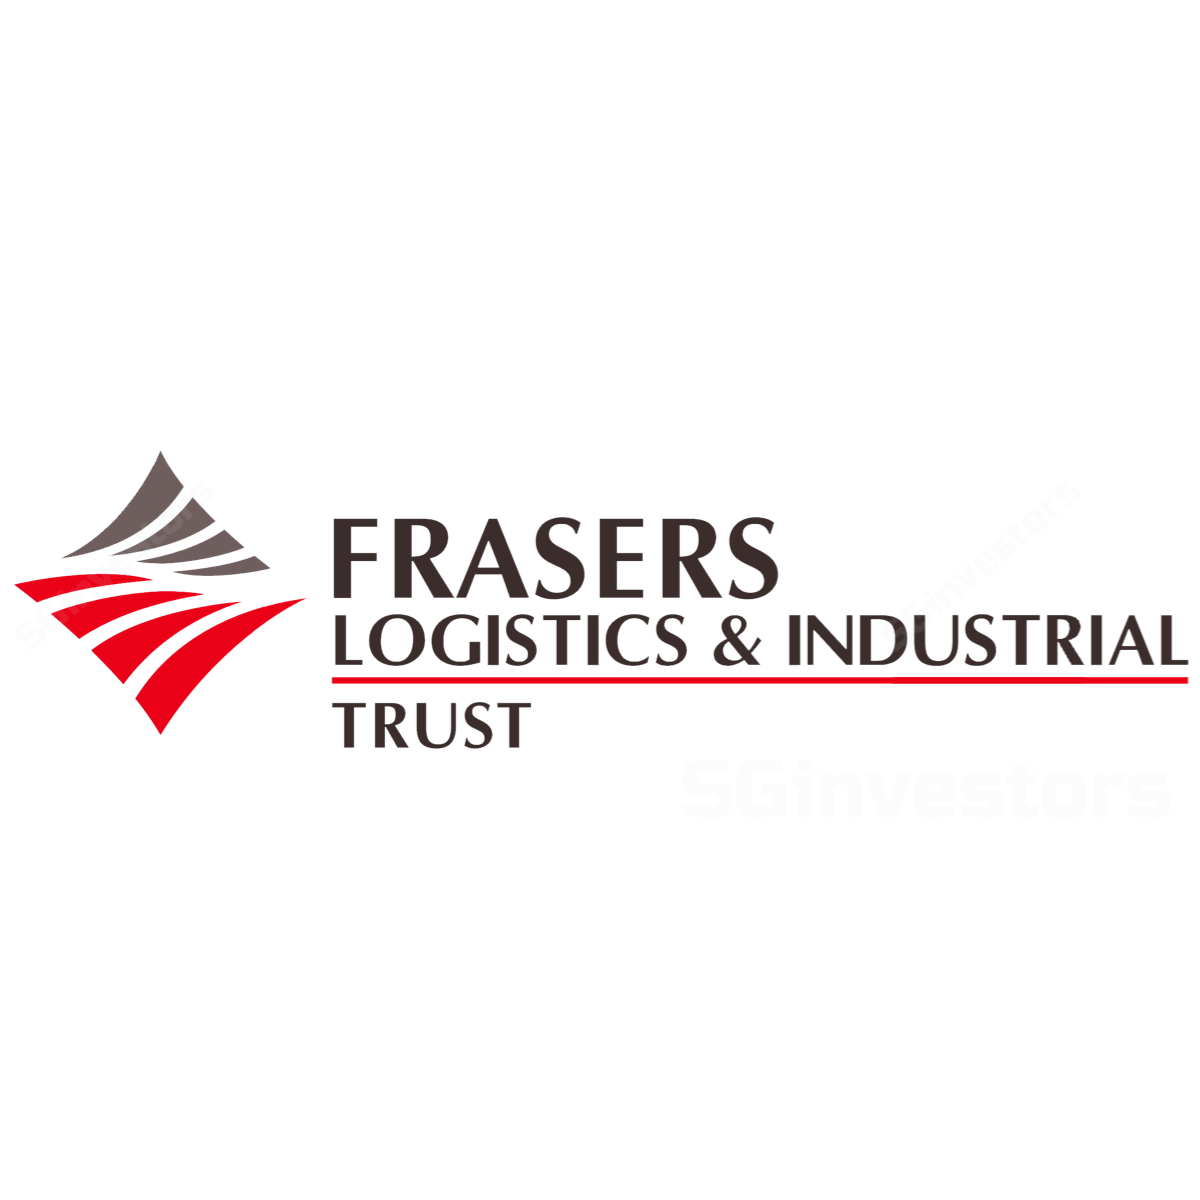 Frasers Logistics & Industrial Trust - DBS Vickers 2017-05-30: Starts Aligning For Growth